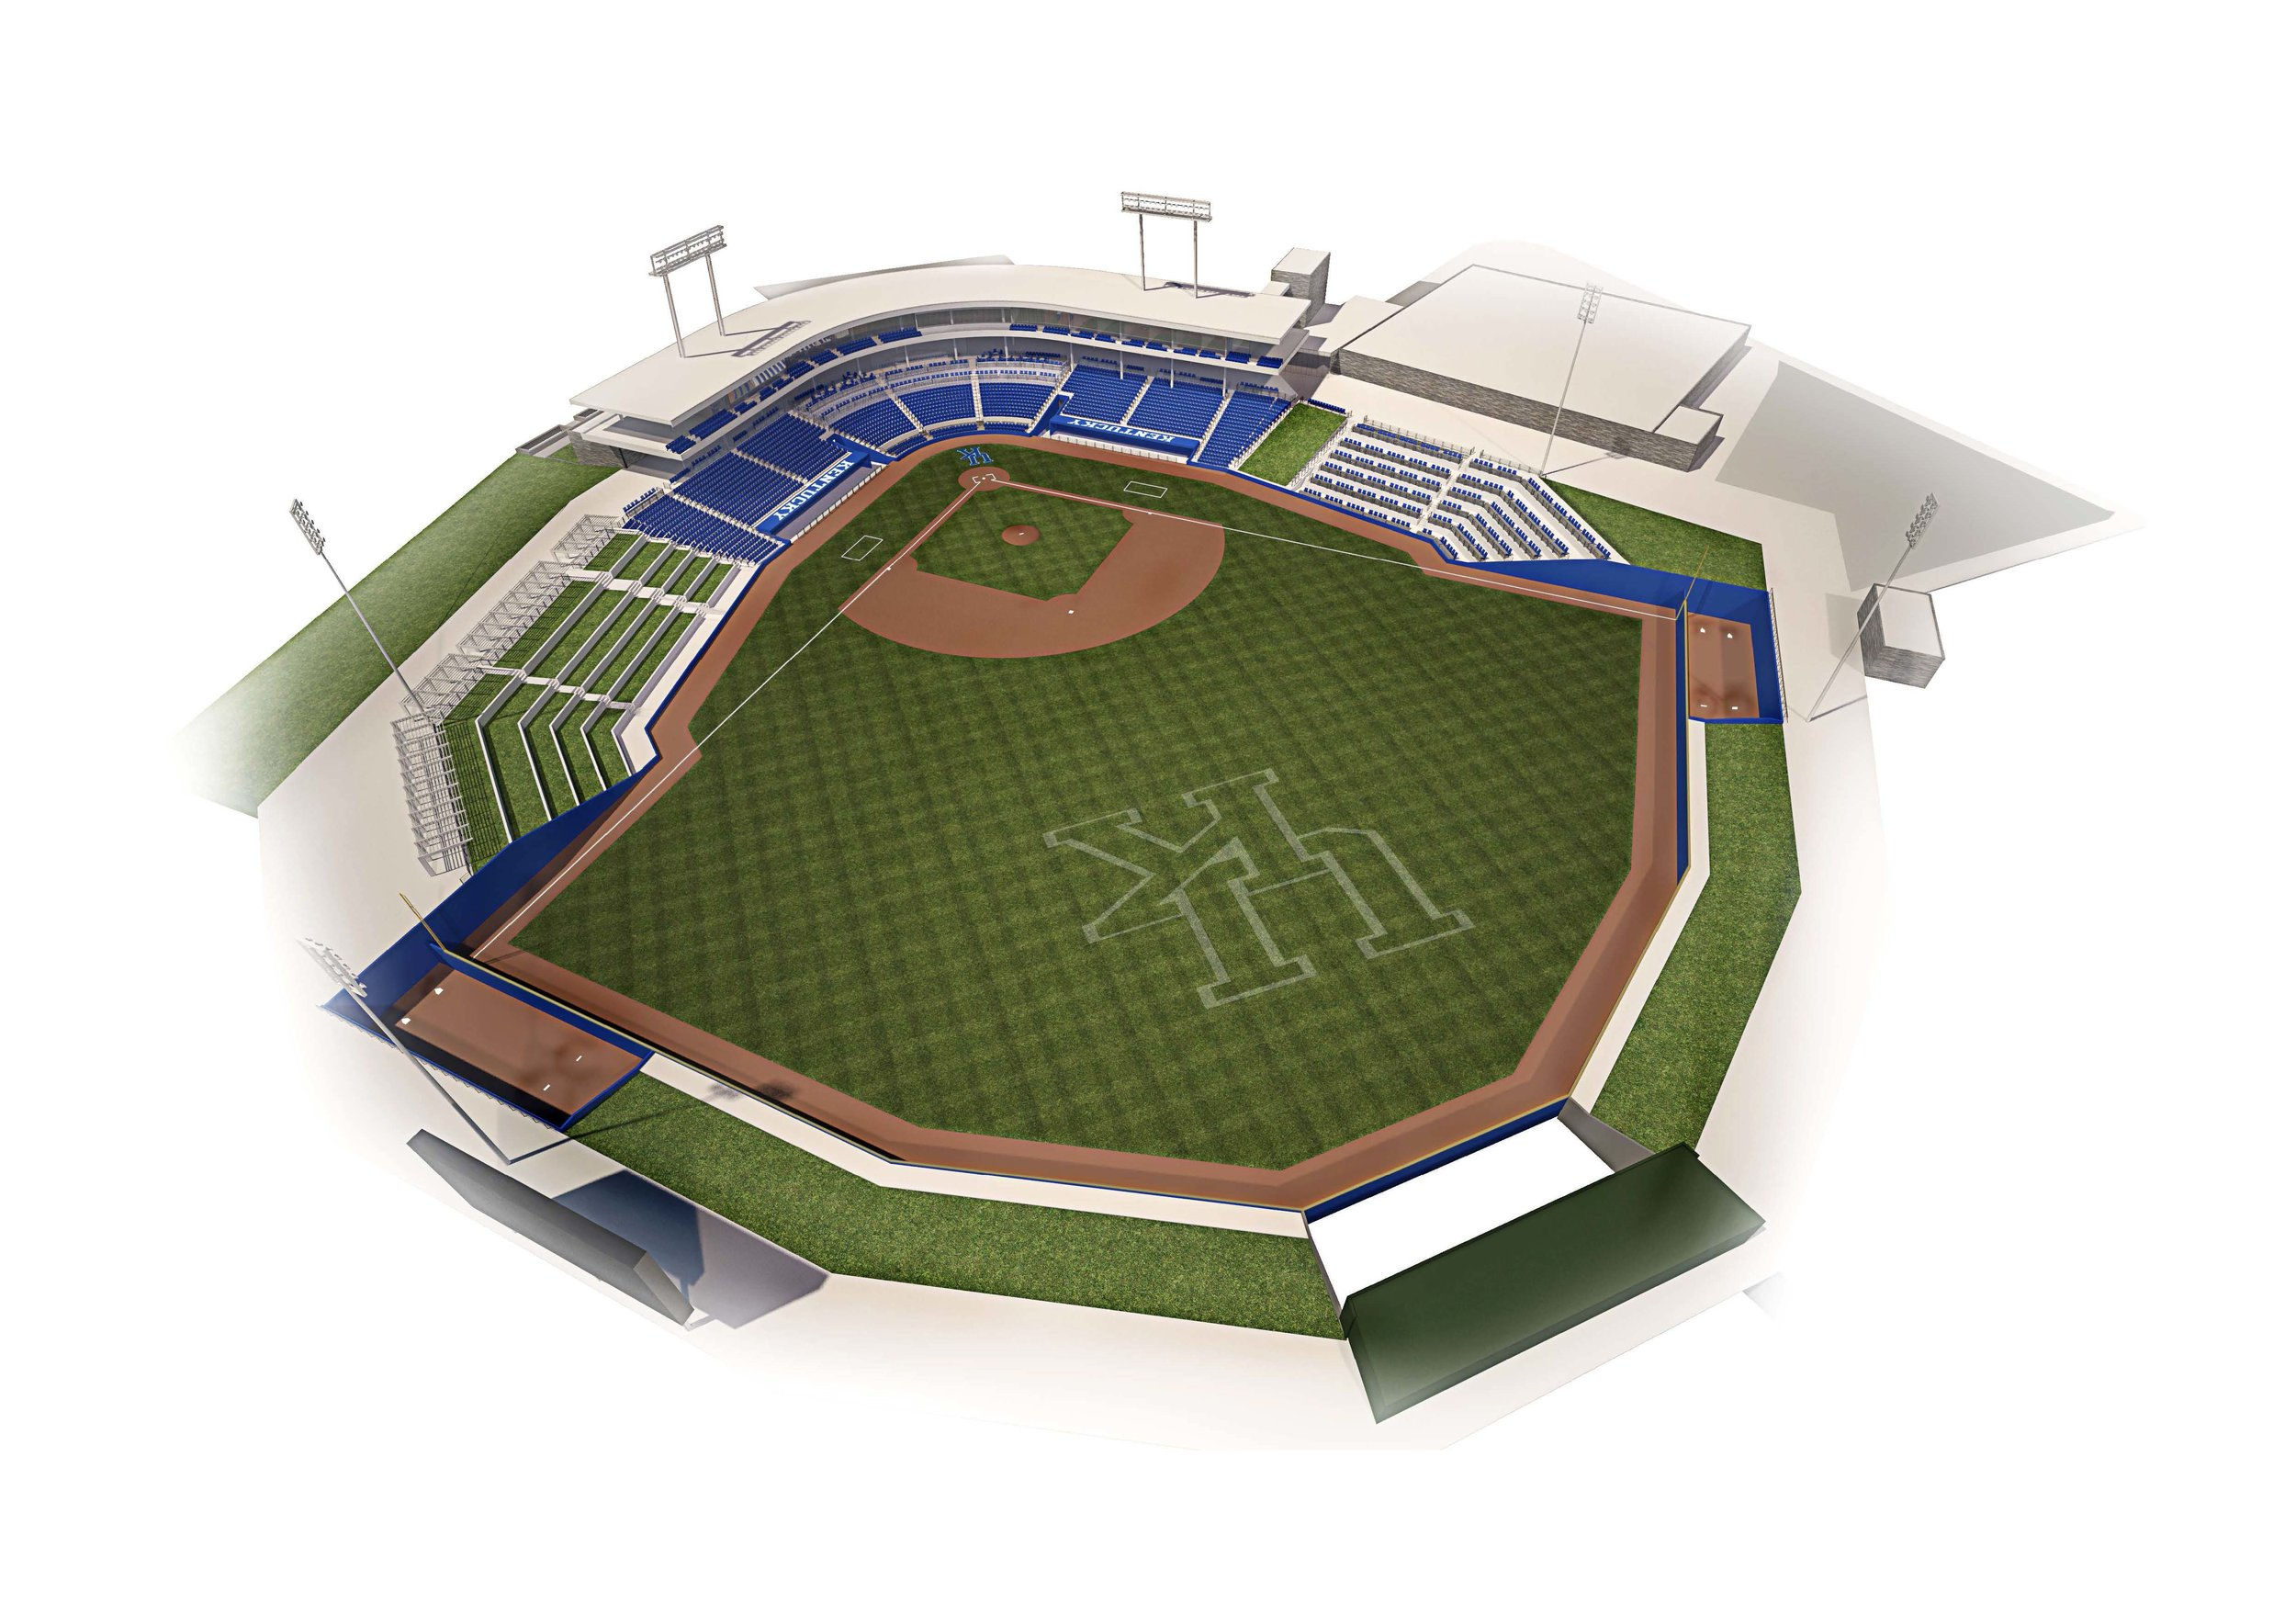 UK Baseball Facility - Don't Use Yet as of 12-18-15.jpg